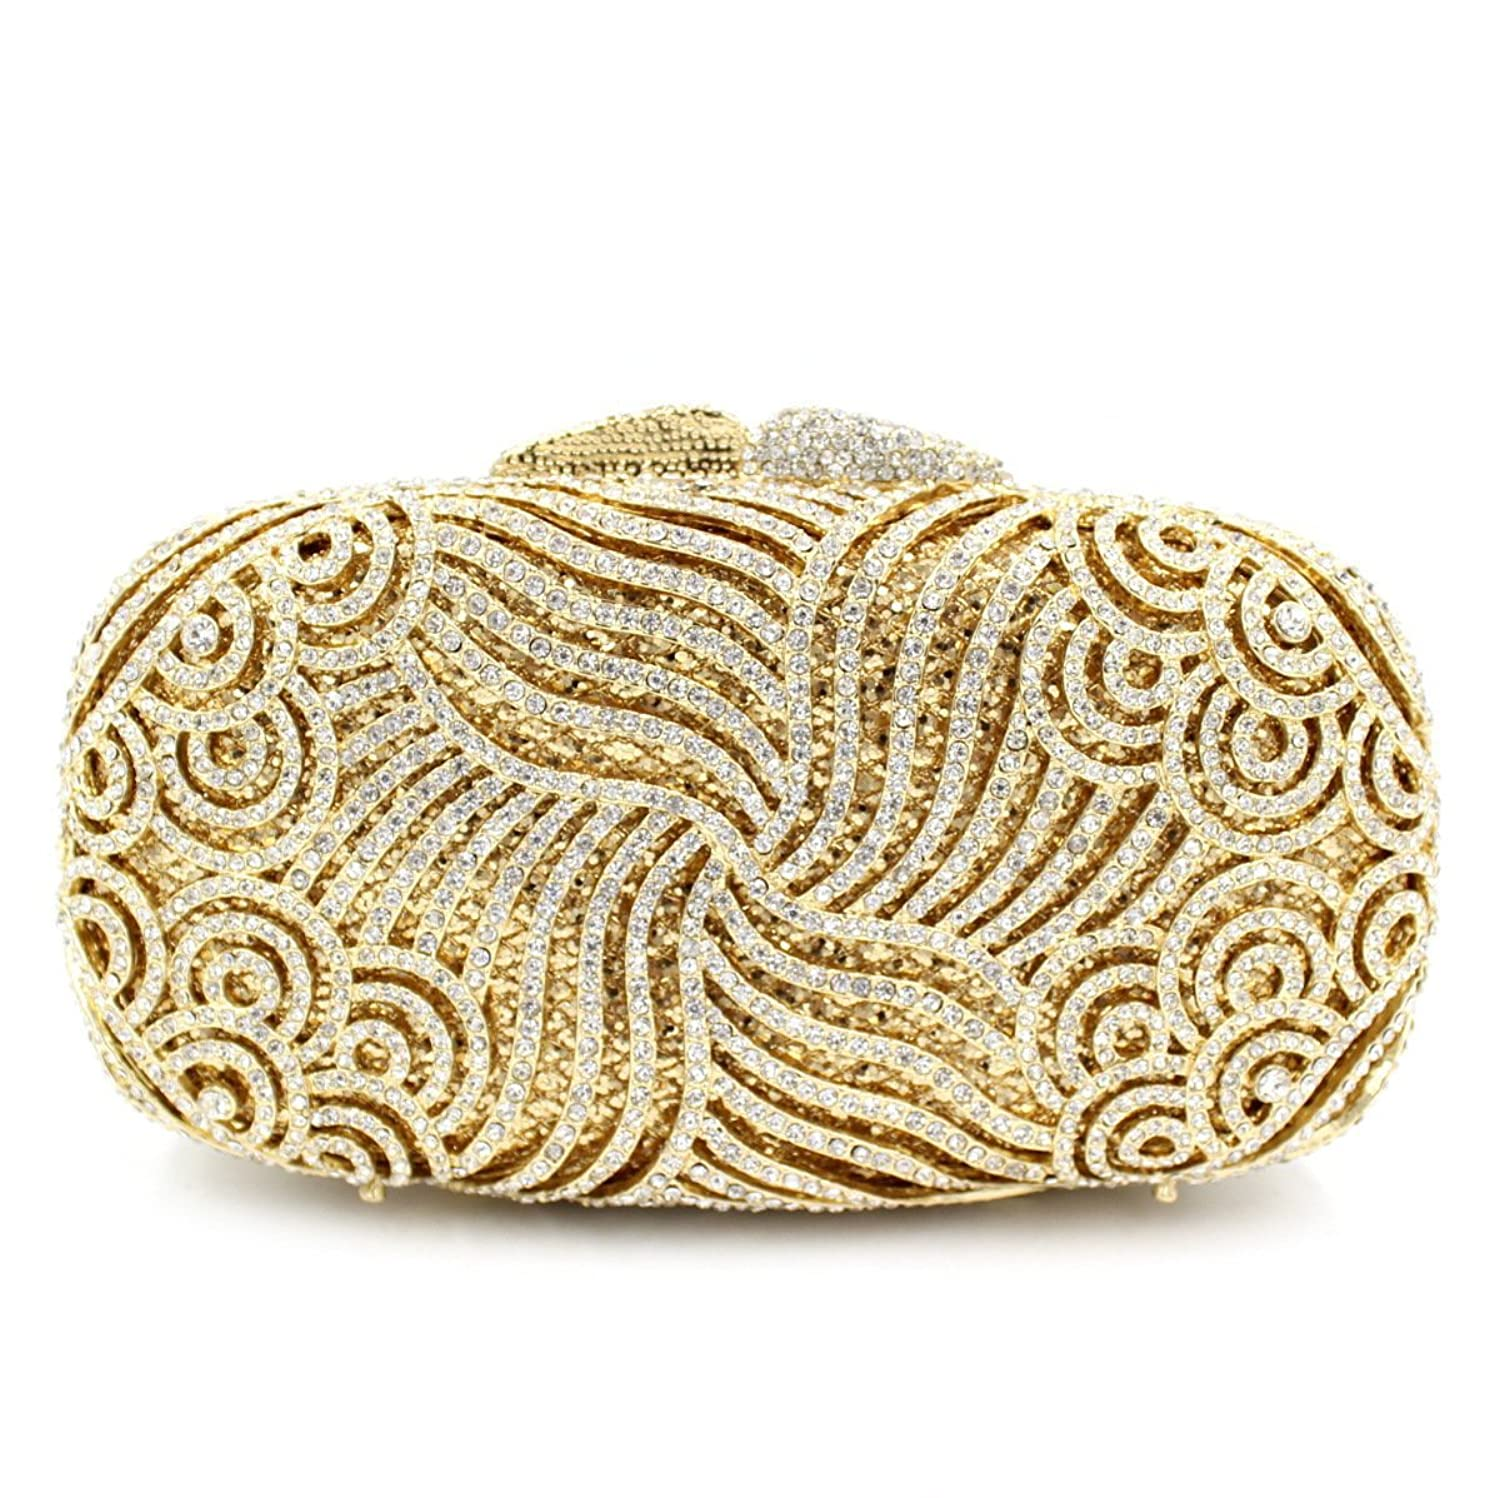 Gorgeous Gold Clutch Bag Crystal Women Bridal Clutch